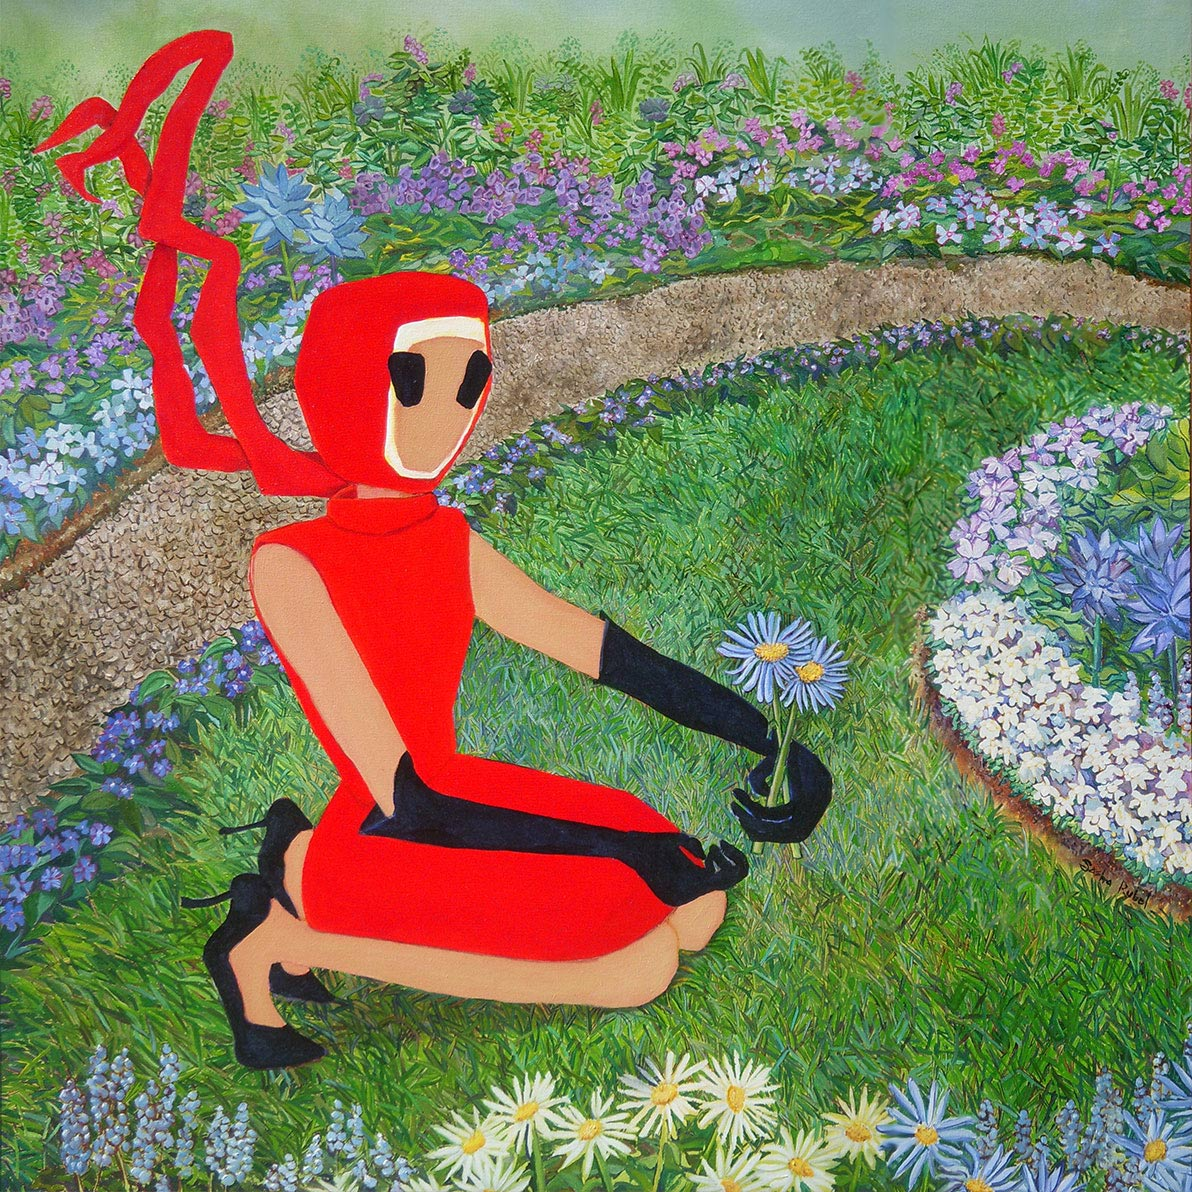 woman ib red dress kneeling by a small pond